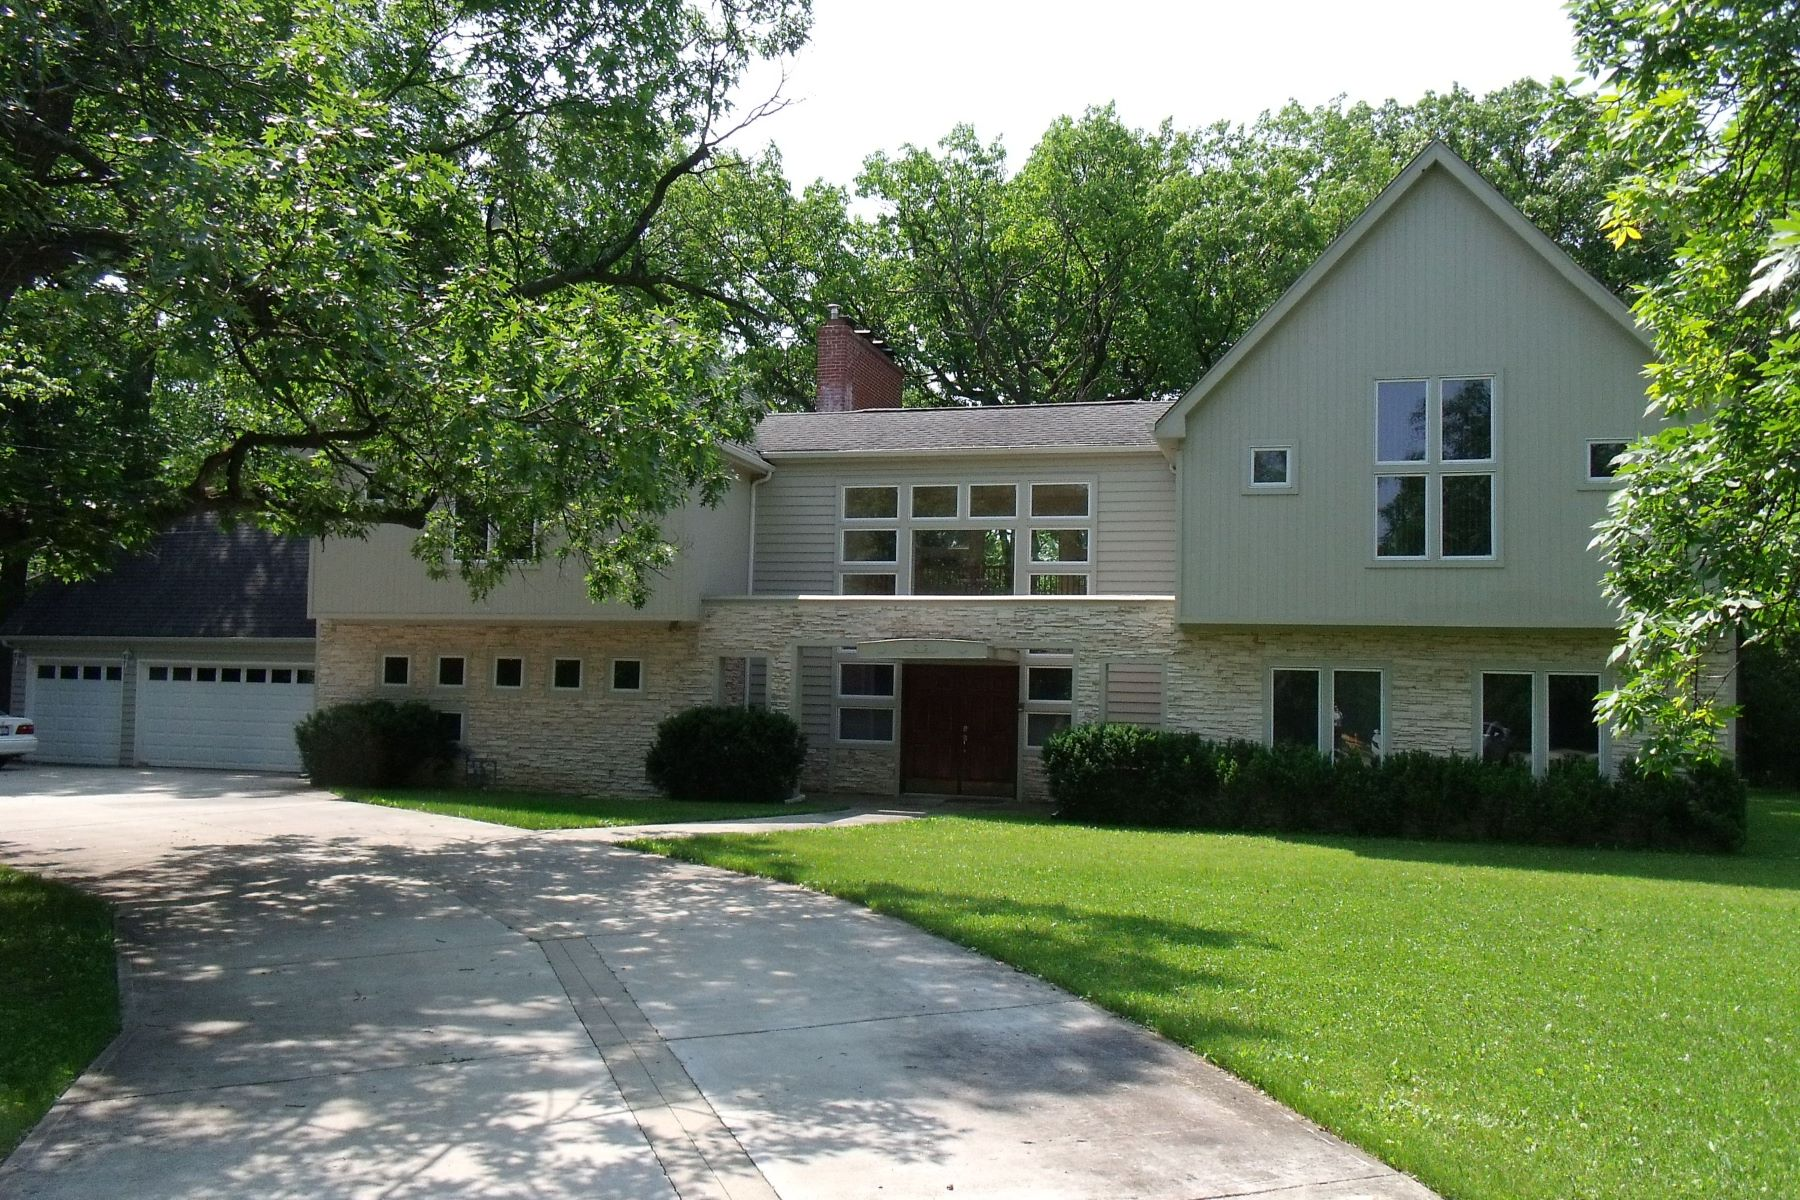 Single Family Home for Active at Custom Built 919 Northwoods Road Deerfield, Illinois 60015 United States